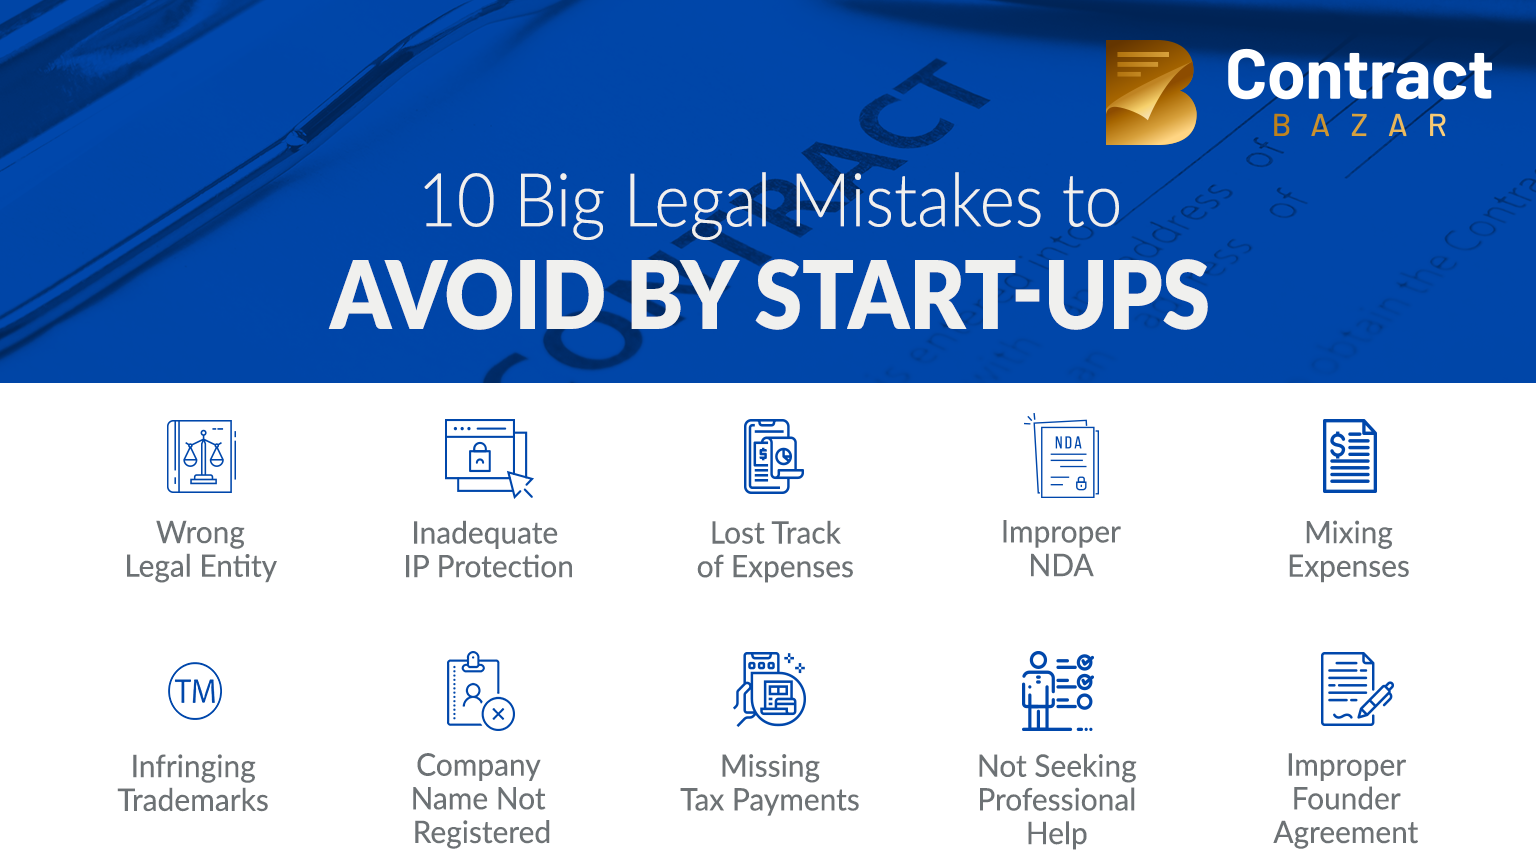 10 Big Legal Mistakes made by Start-ups